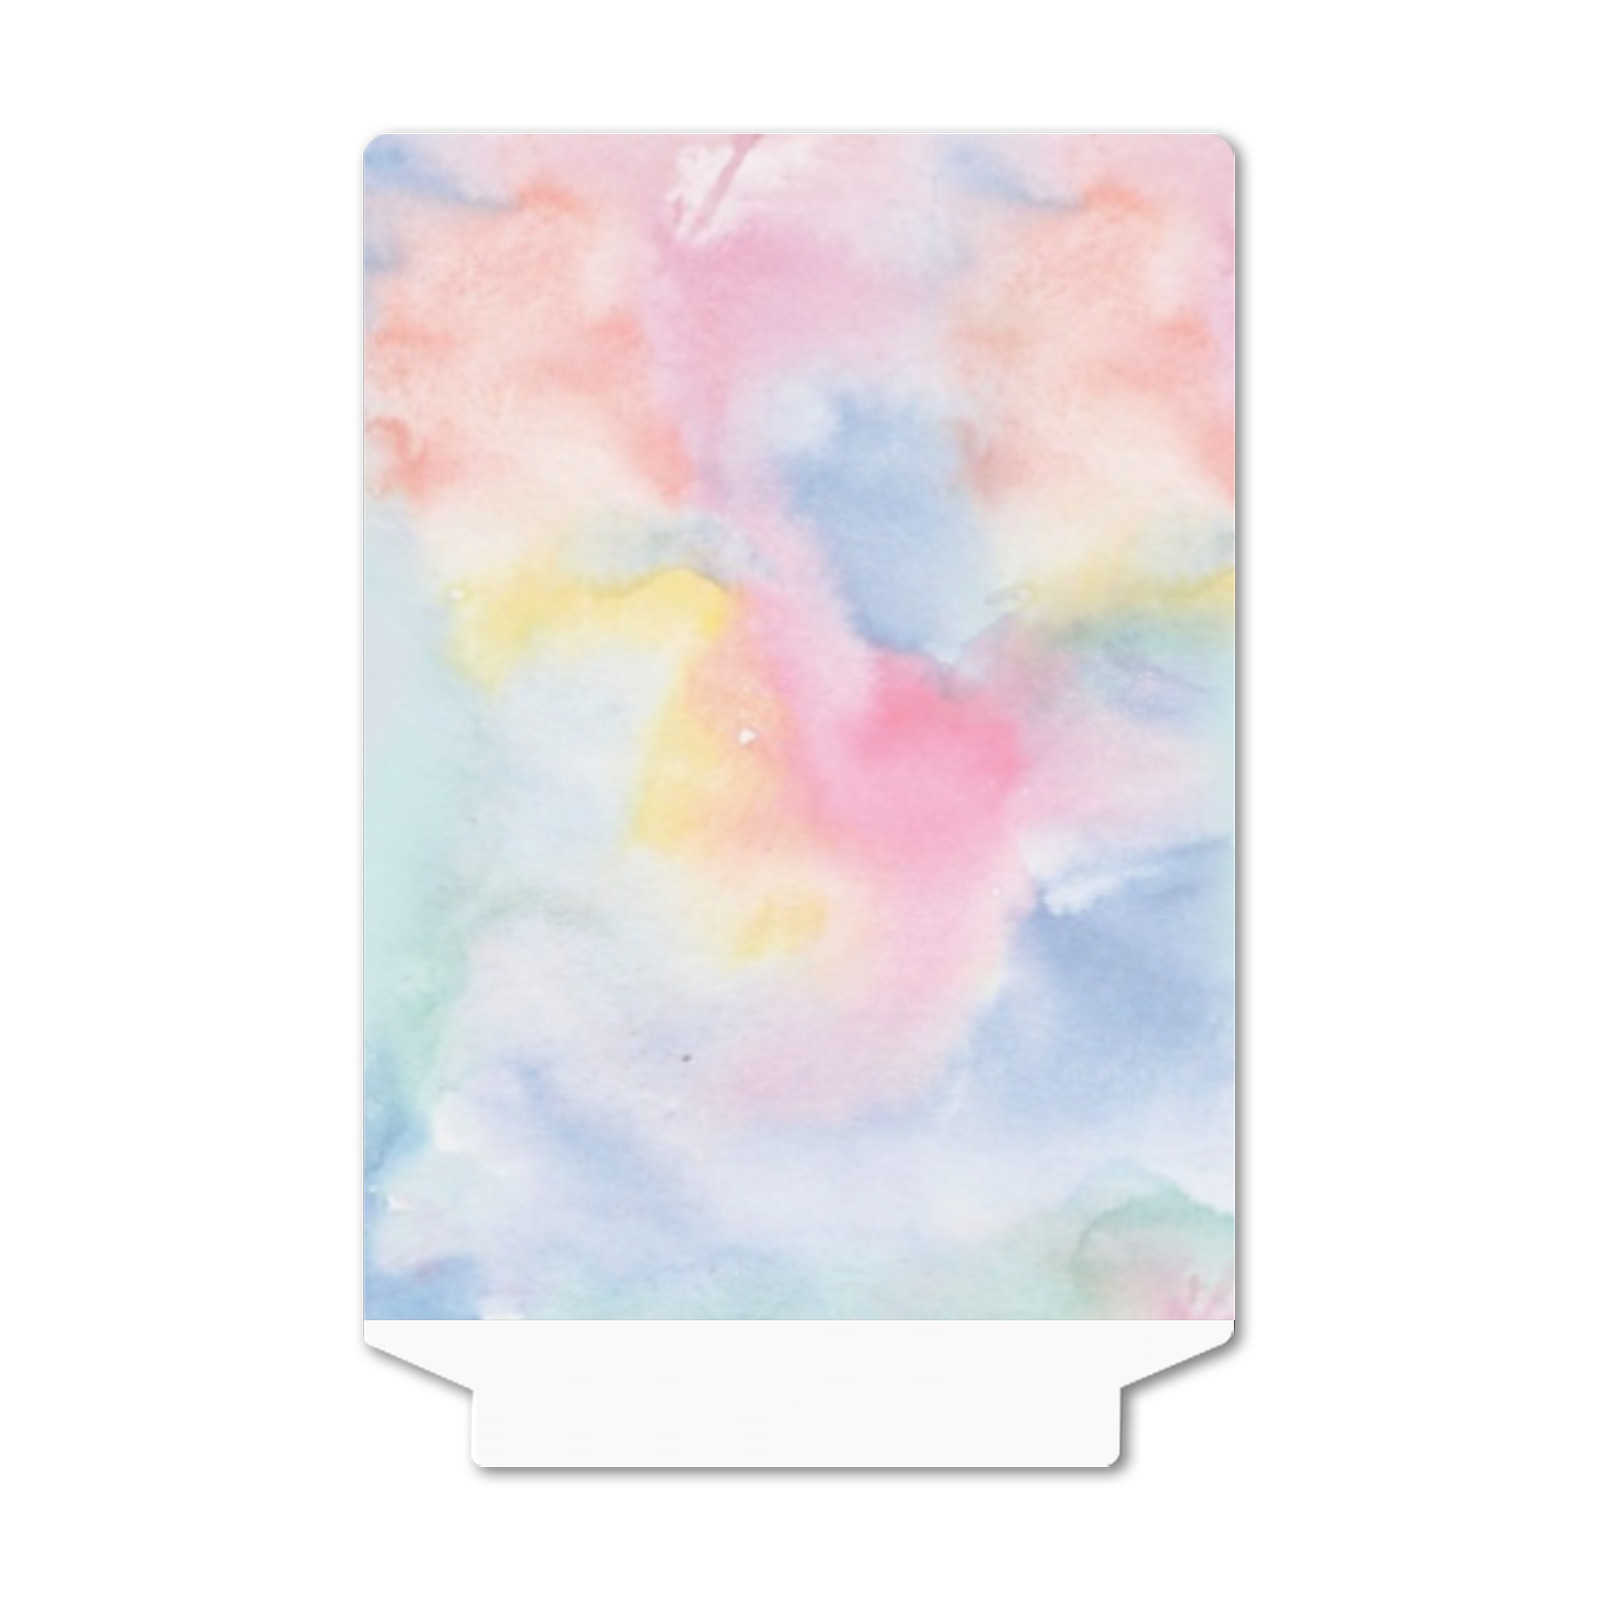 Colorful watercolor Acrylic Photo Panel with Wooden Stand